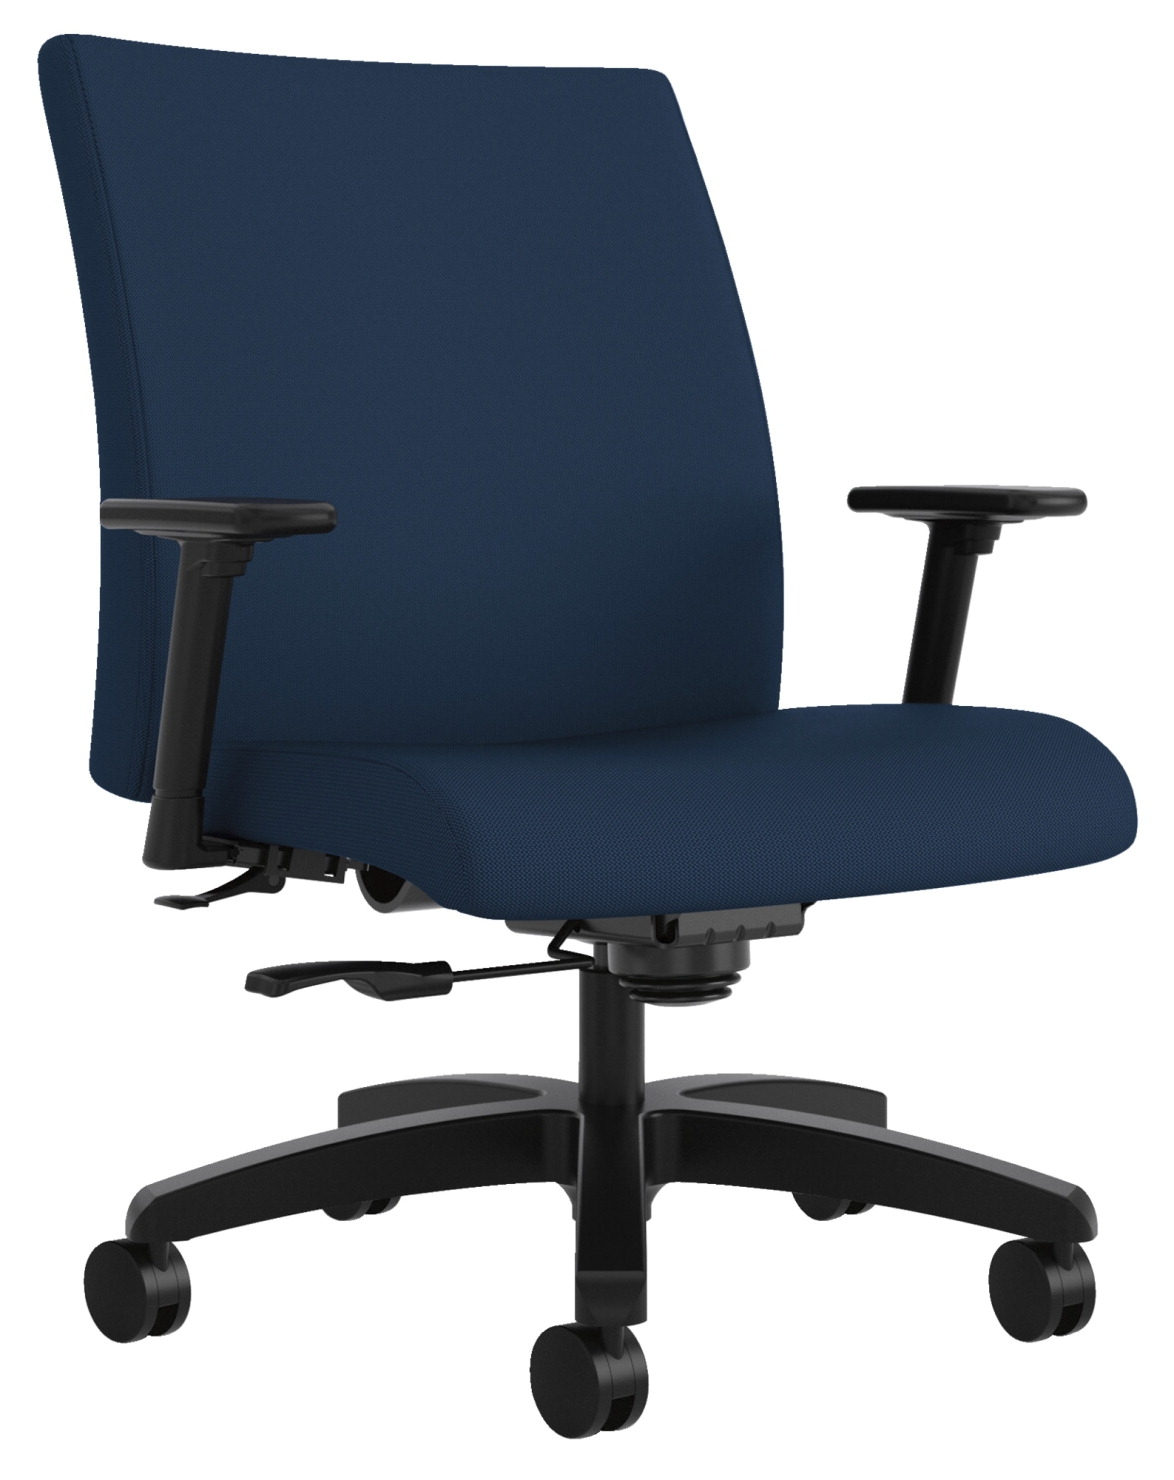 Hon Ignition Series Seating Big And Tall Chairs; 28 X 32-1/4 X 43 In; Mariner - 1504733 - Yoga And Pilates Eyebags And Neckpillows 1504733